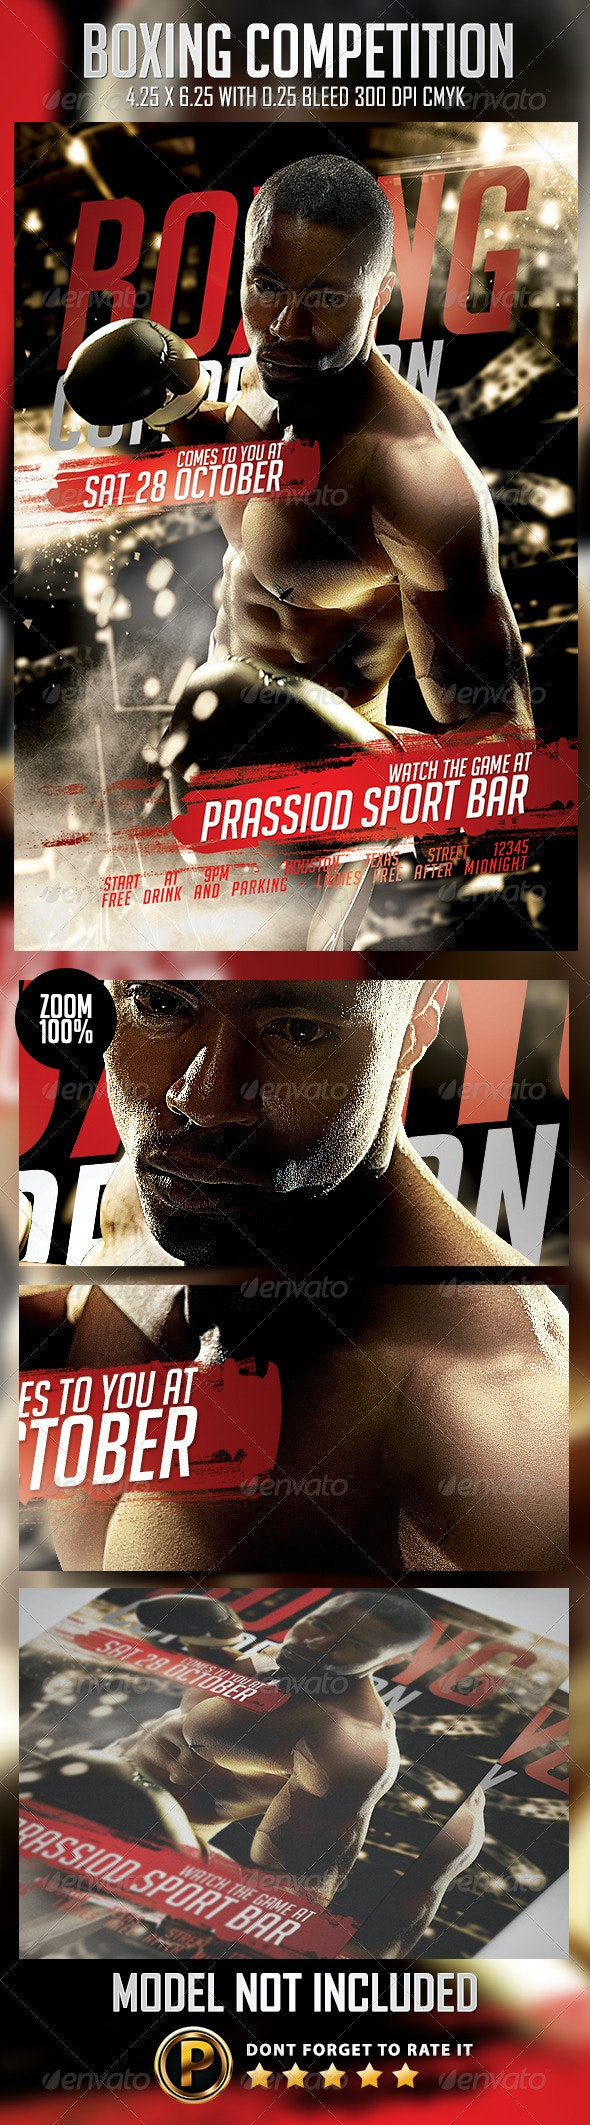 Boxing Competition Flyer Template - Sports Events